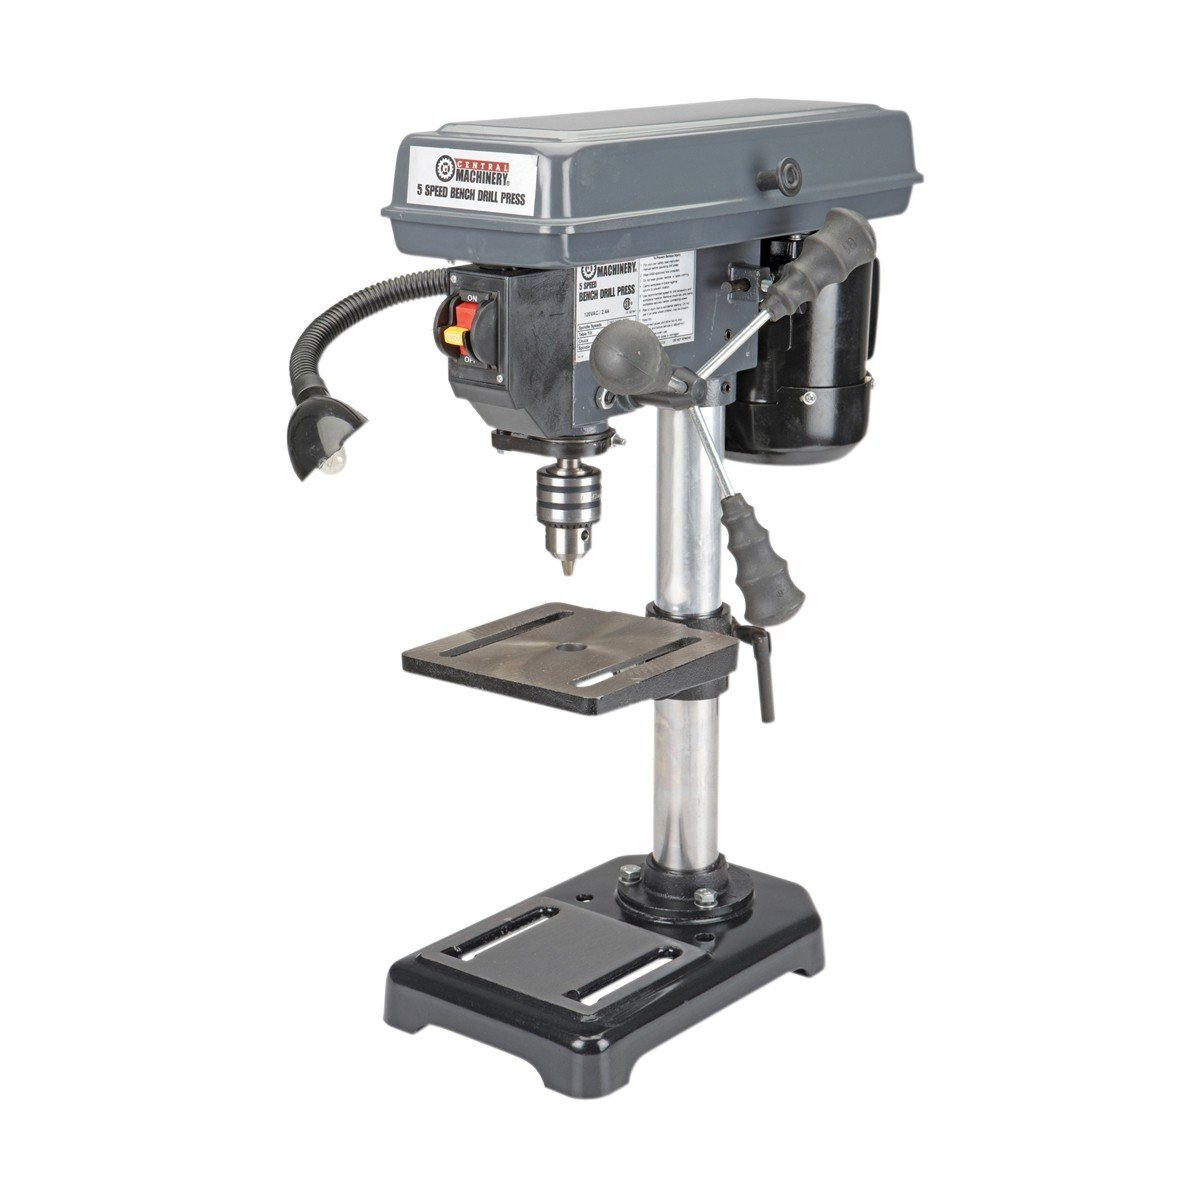 central machinery 60238 5 speed bench drill press cetral machinery rh amazon com central machinery 13 drill press manual central machinery 10 inch drill press manual